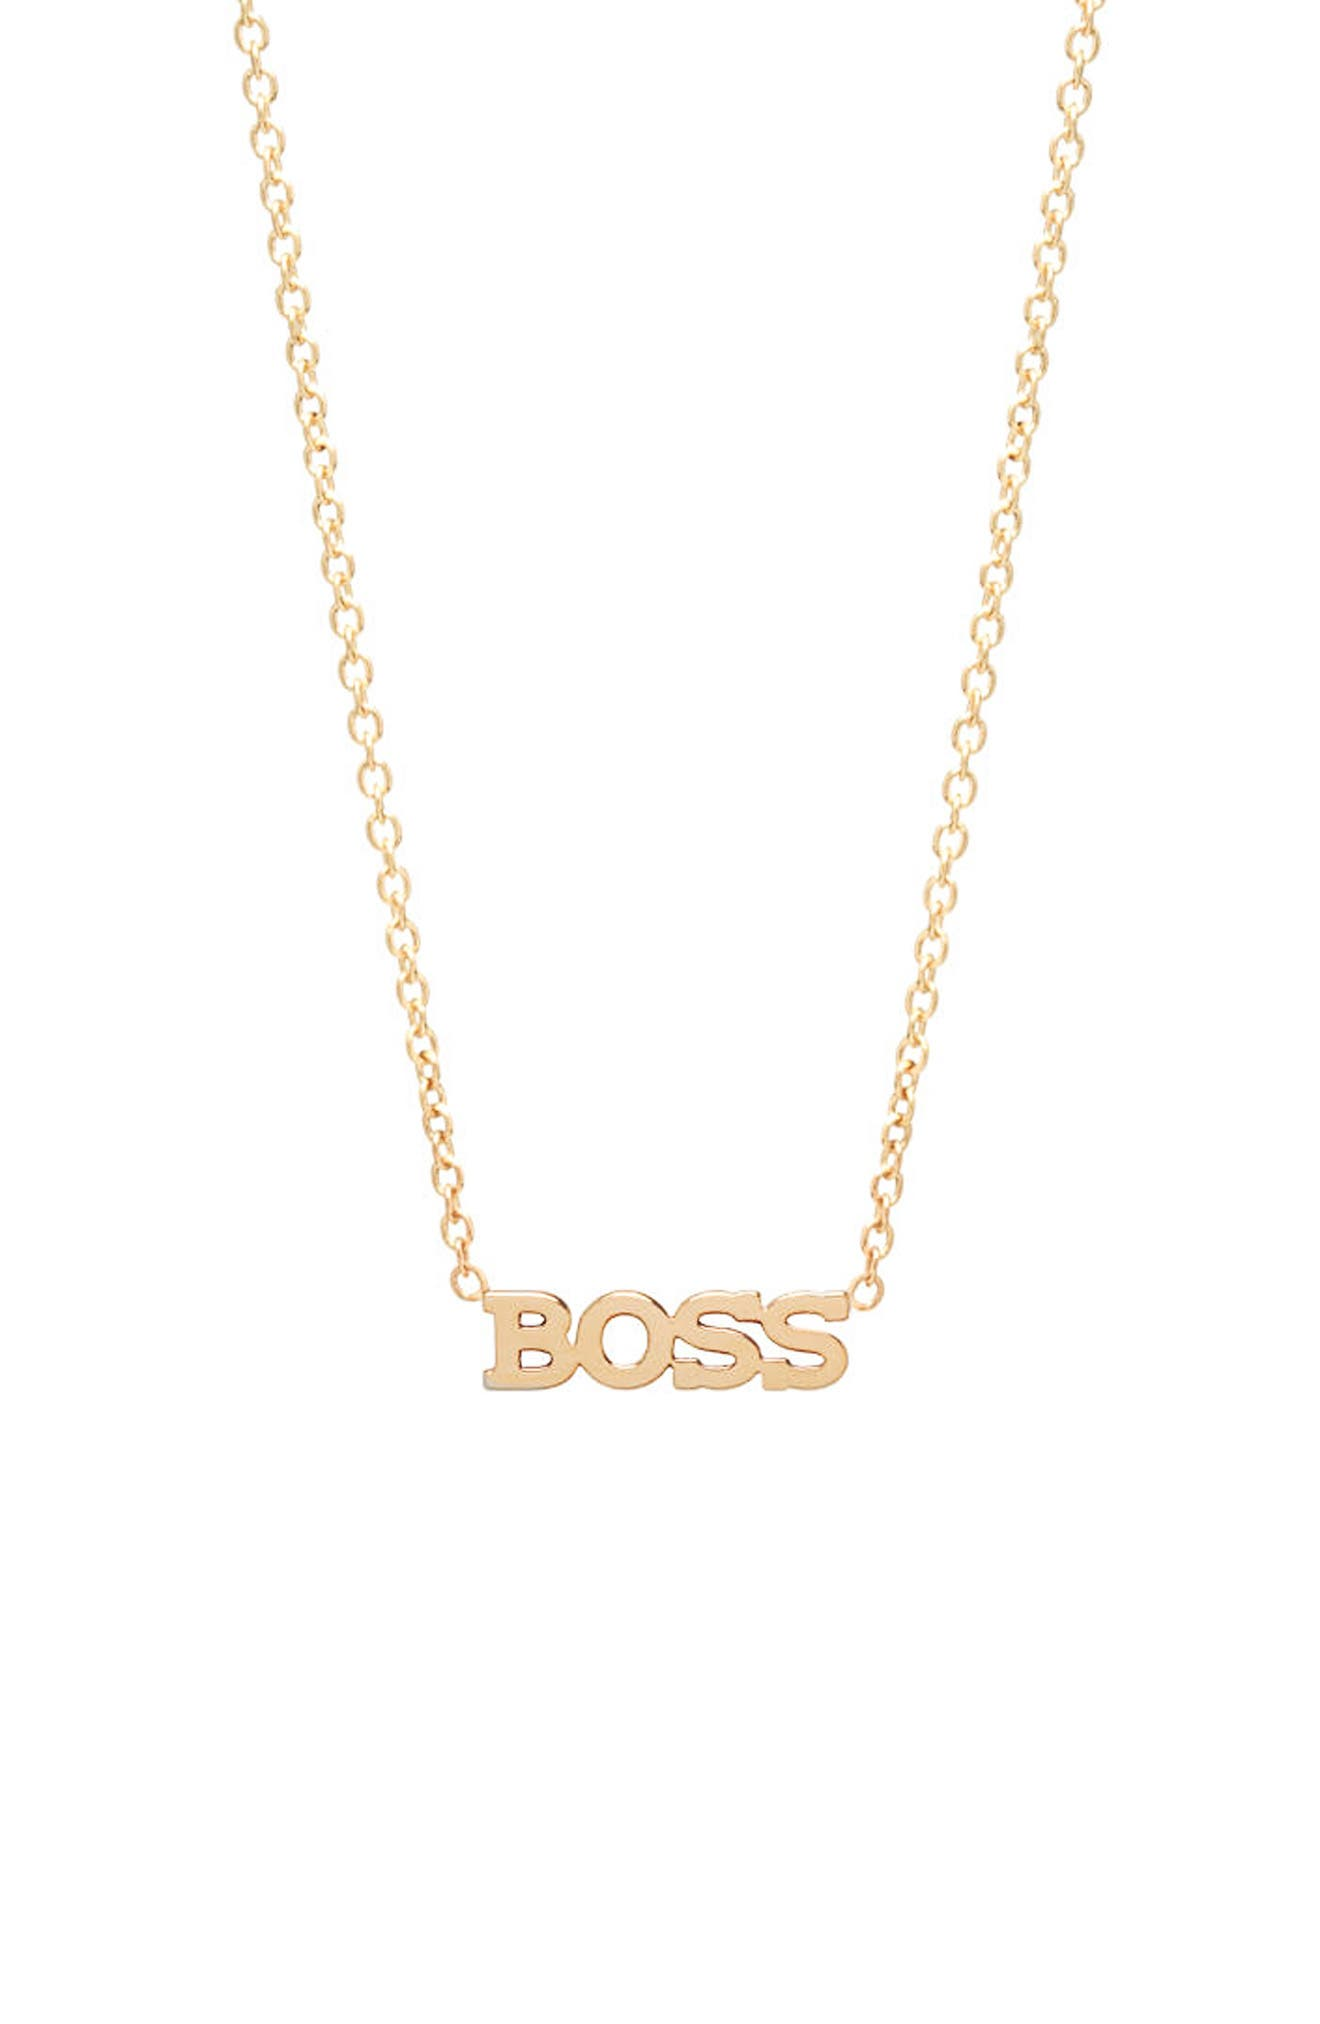 Itty Bitty Typographical Pendant Necklace,                         Main,                         color, Yellow Gold/ Gold